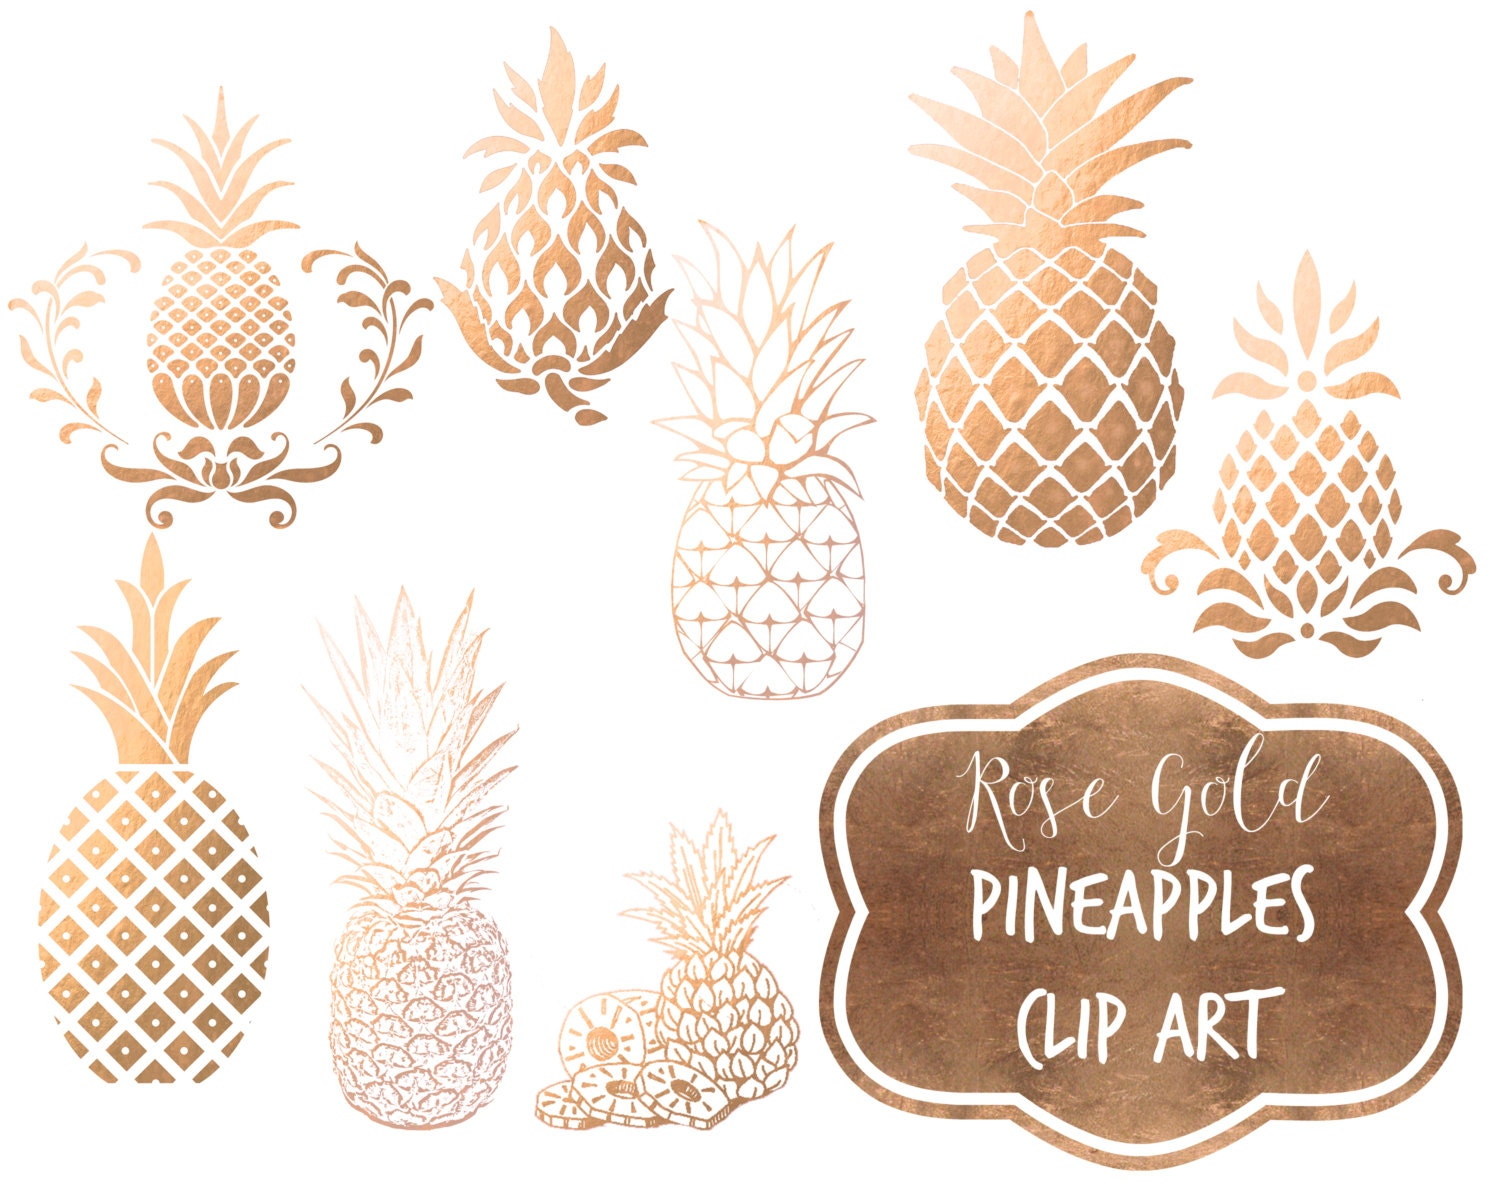 Rose Gold Pineapple Clipart Foil Pineapples Digital Clip Art Faux Metallic From SouthPacific